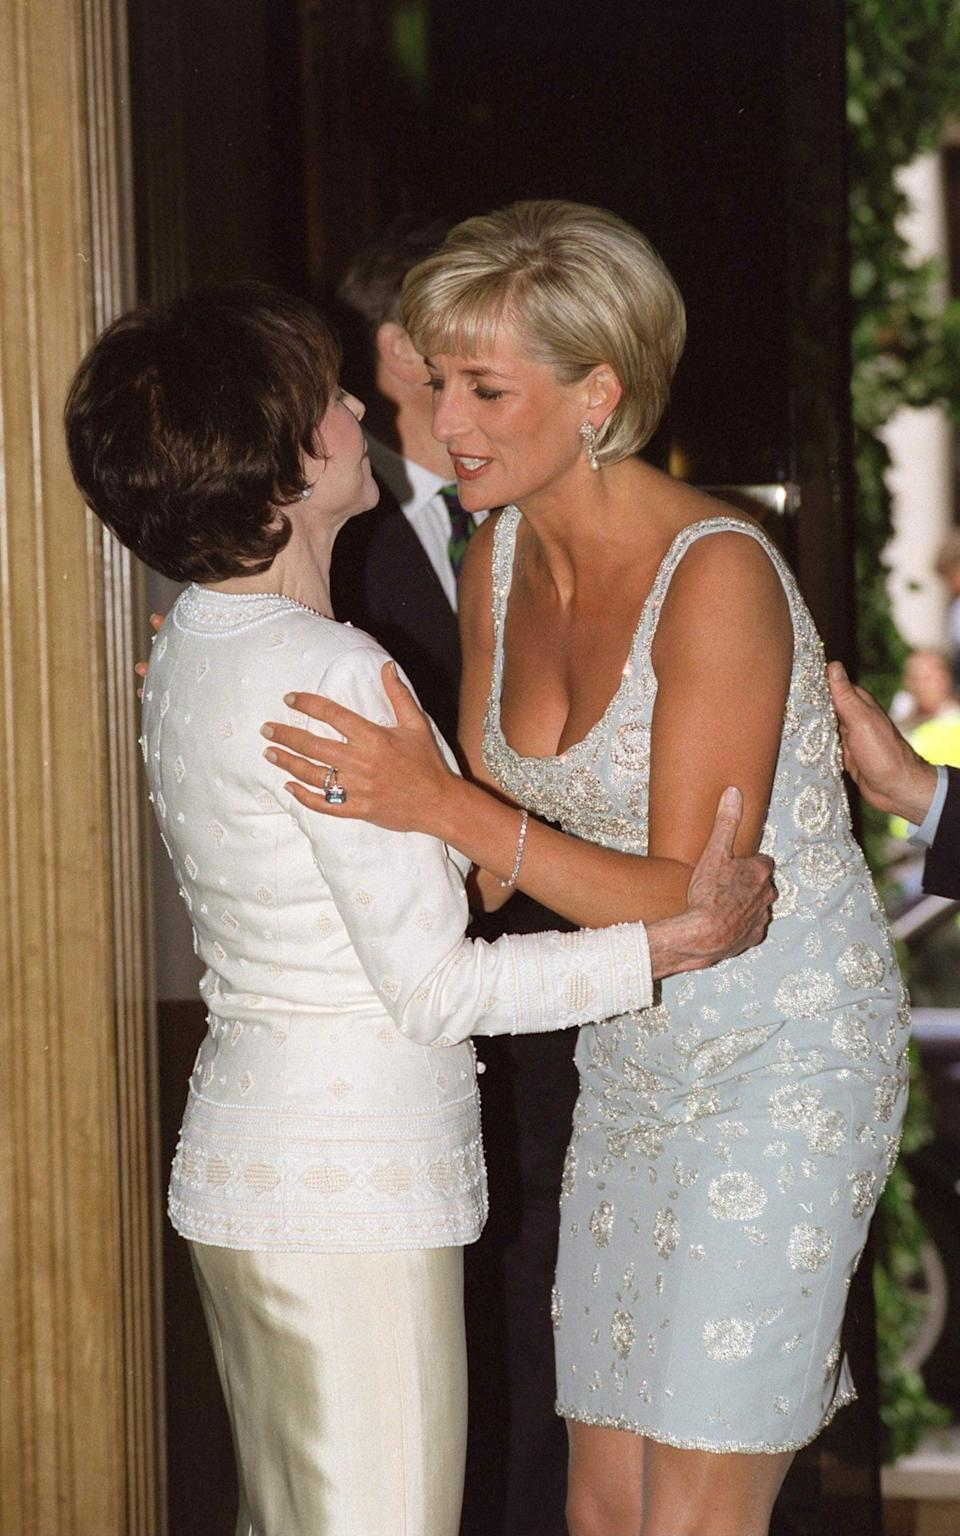 With Diana, Princess of Wales - Tim Graham Photo Library via Getty Images